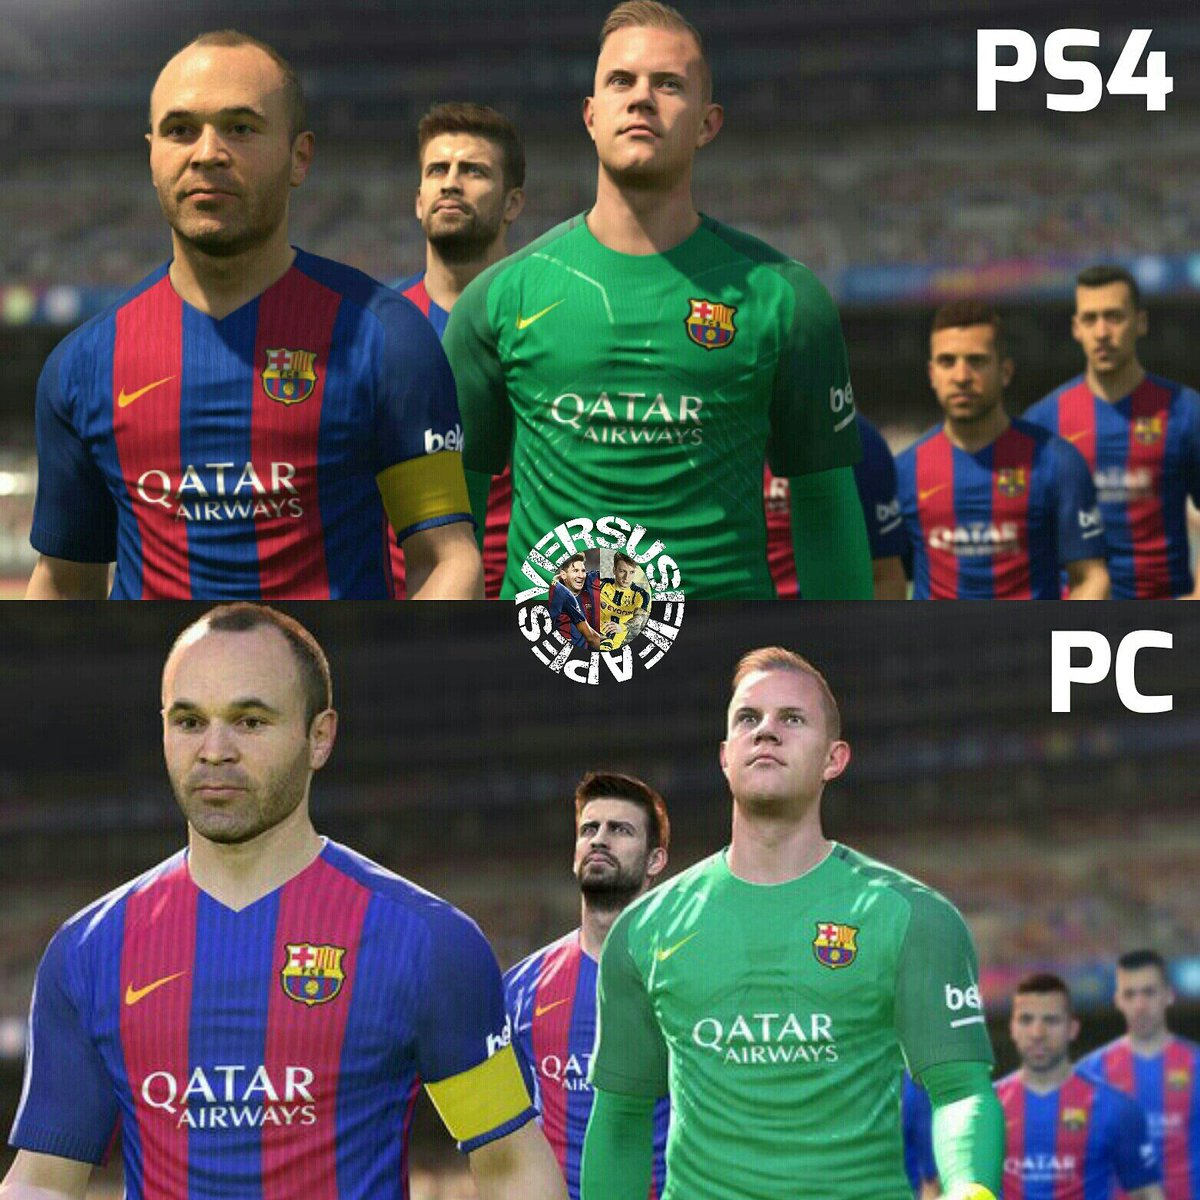 eFootball PES 2020 VS FIFA 20 on Twitter: